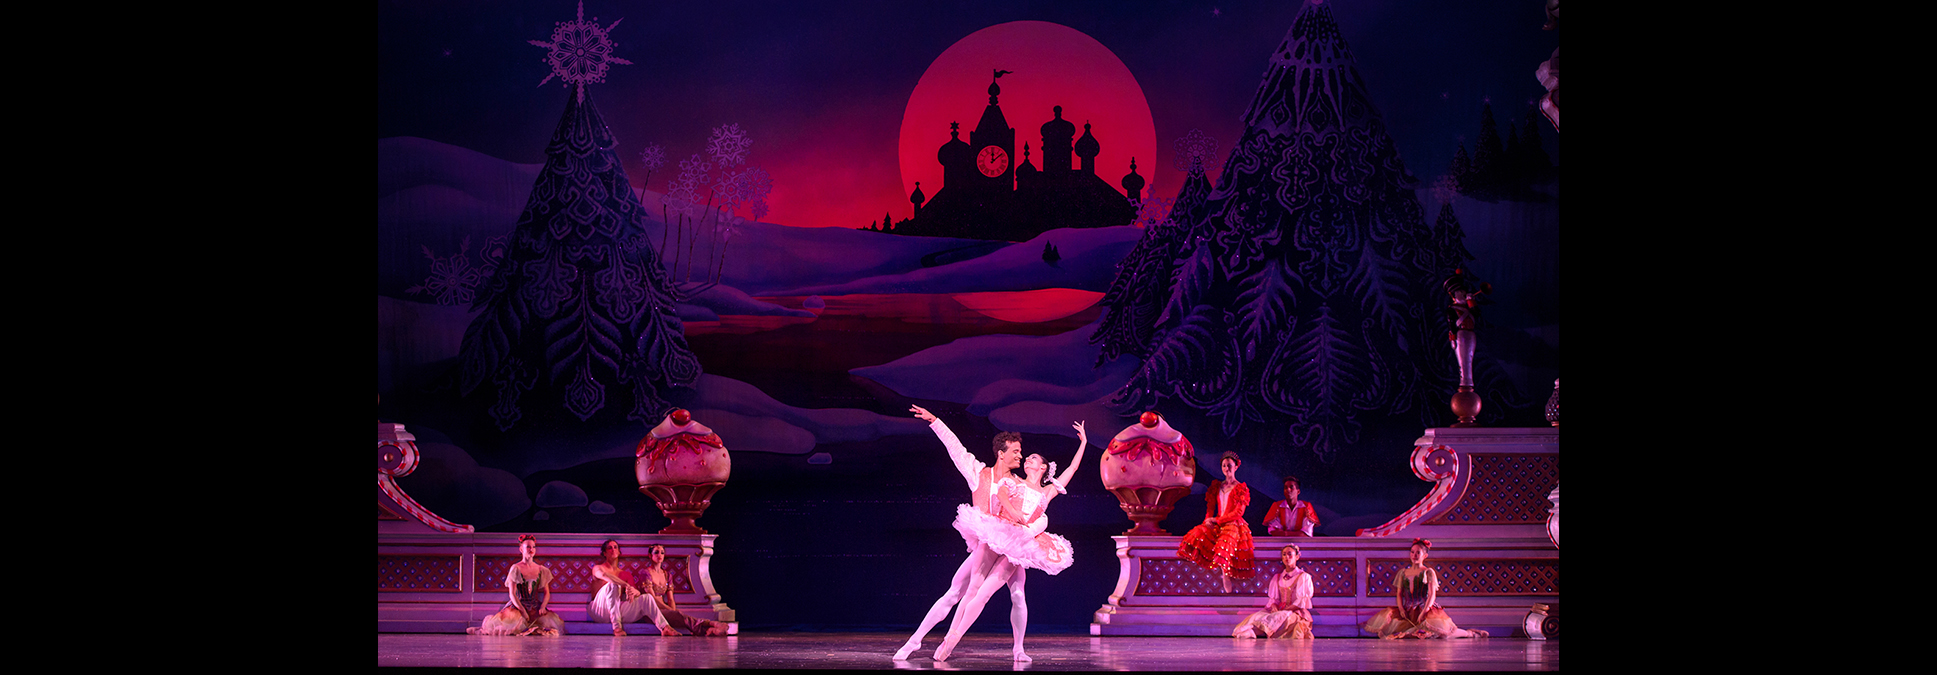 Milwaukee Ballet Nutcracker at the Marcus Center